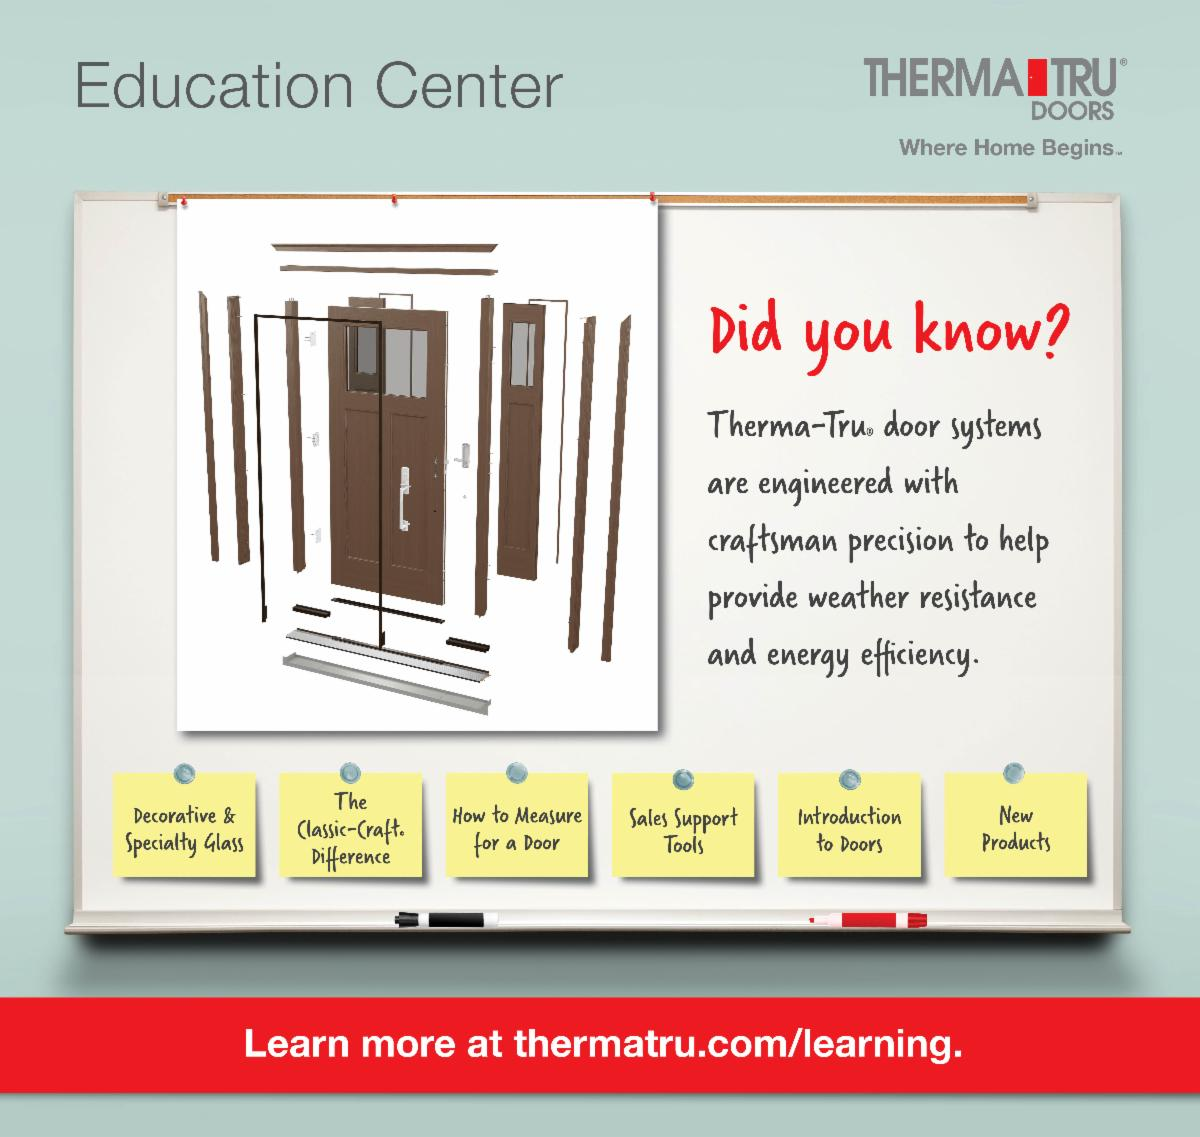 Education Center - Therma-Tru__ door systems are engineered with craftsman precision to help provide weather resistance and energy efficiency.